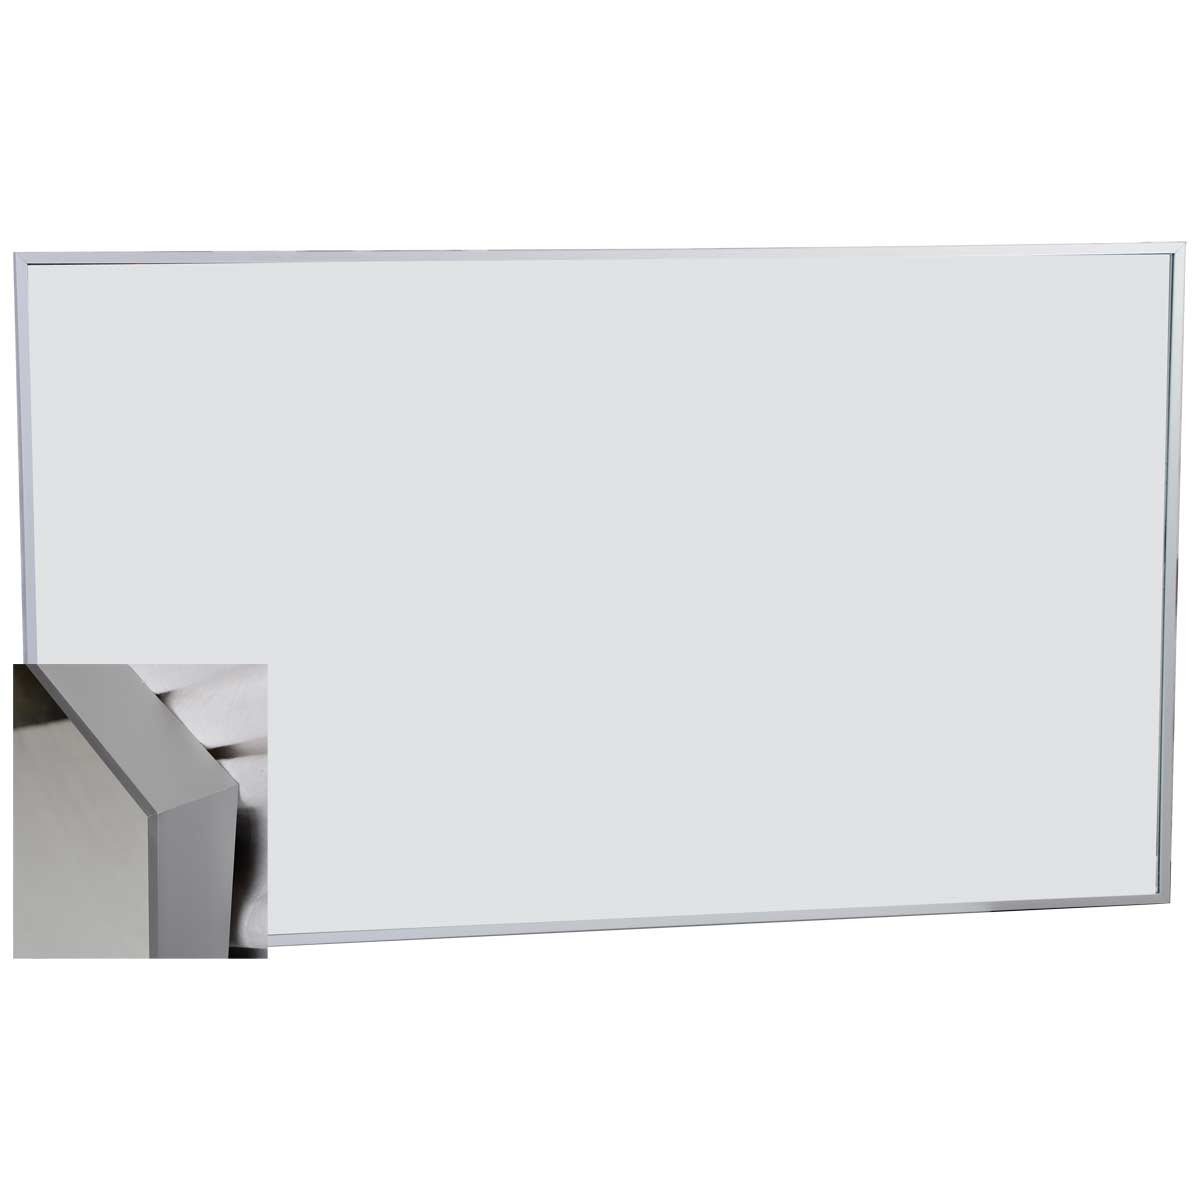 Metal Framed Wall Mirror - 1500+ Trend Home Design - 1500+ Trend ...